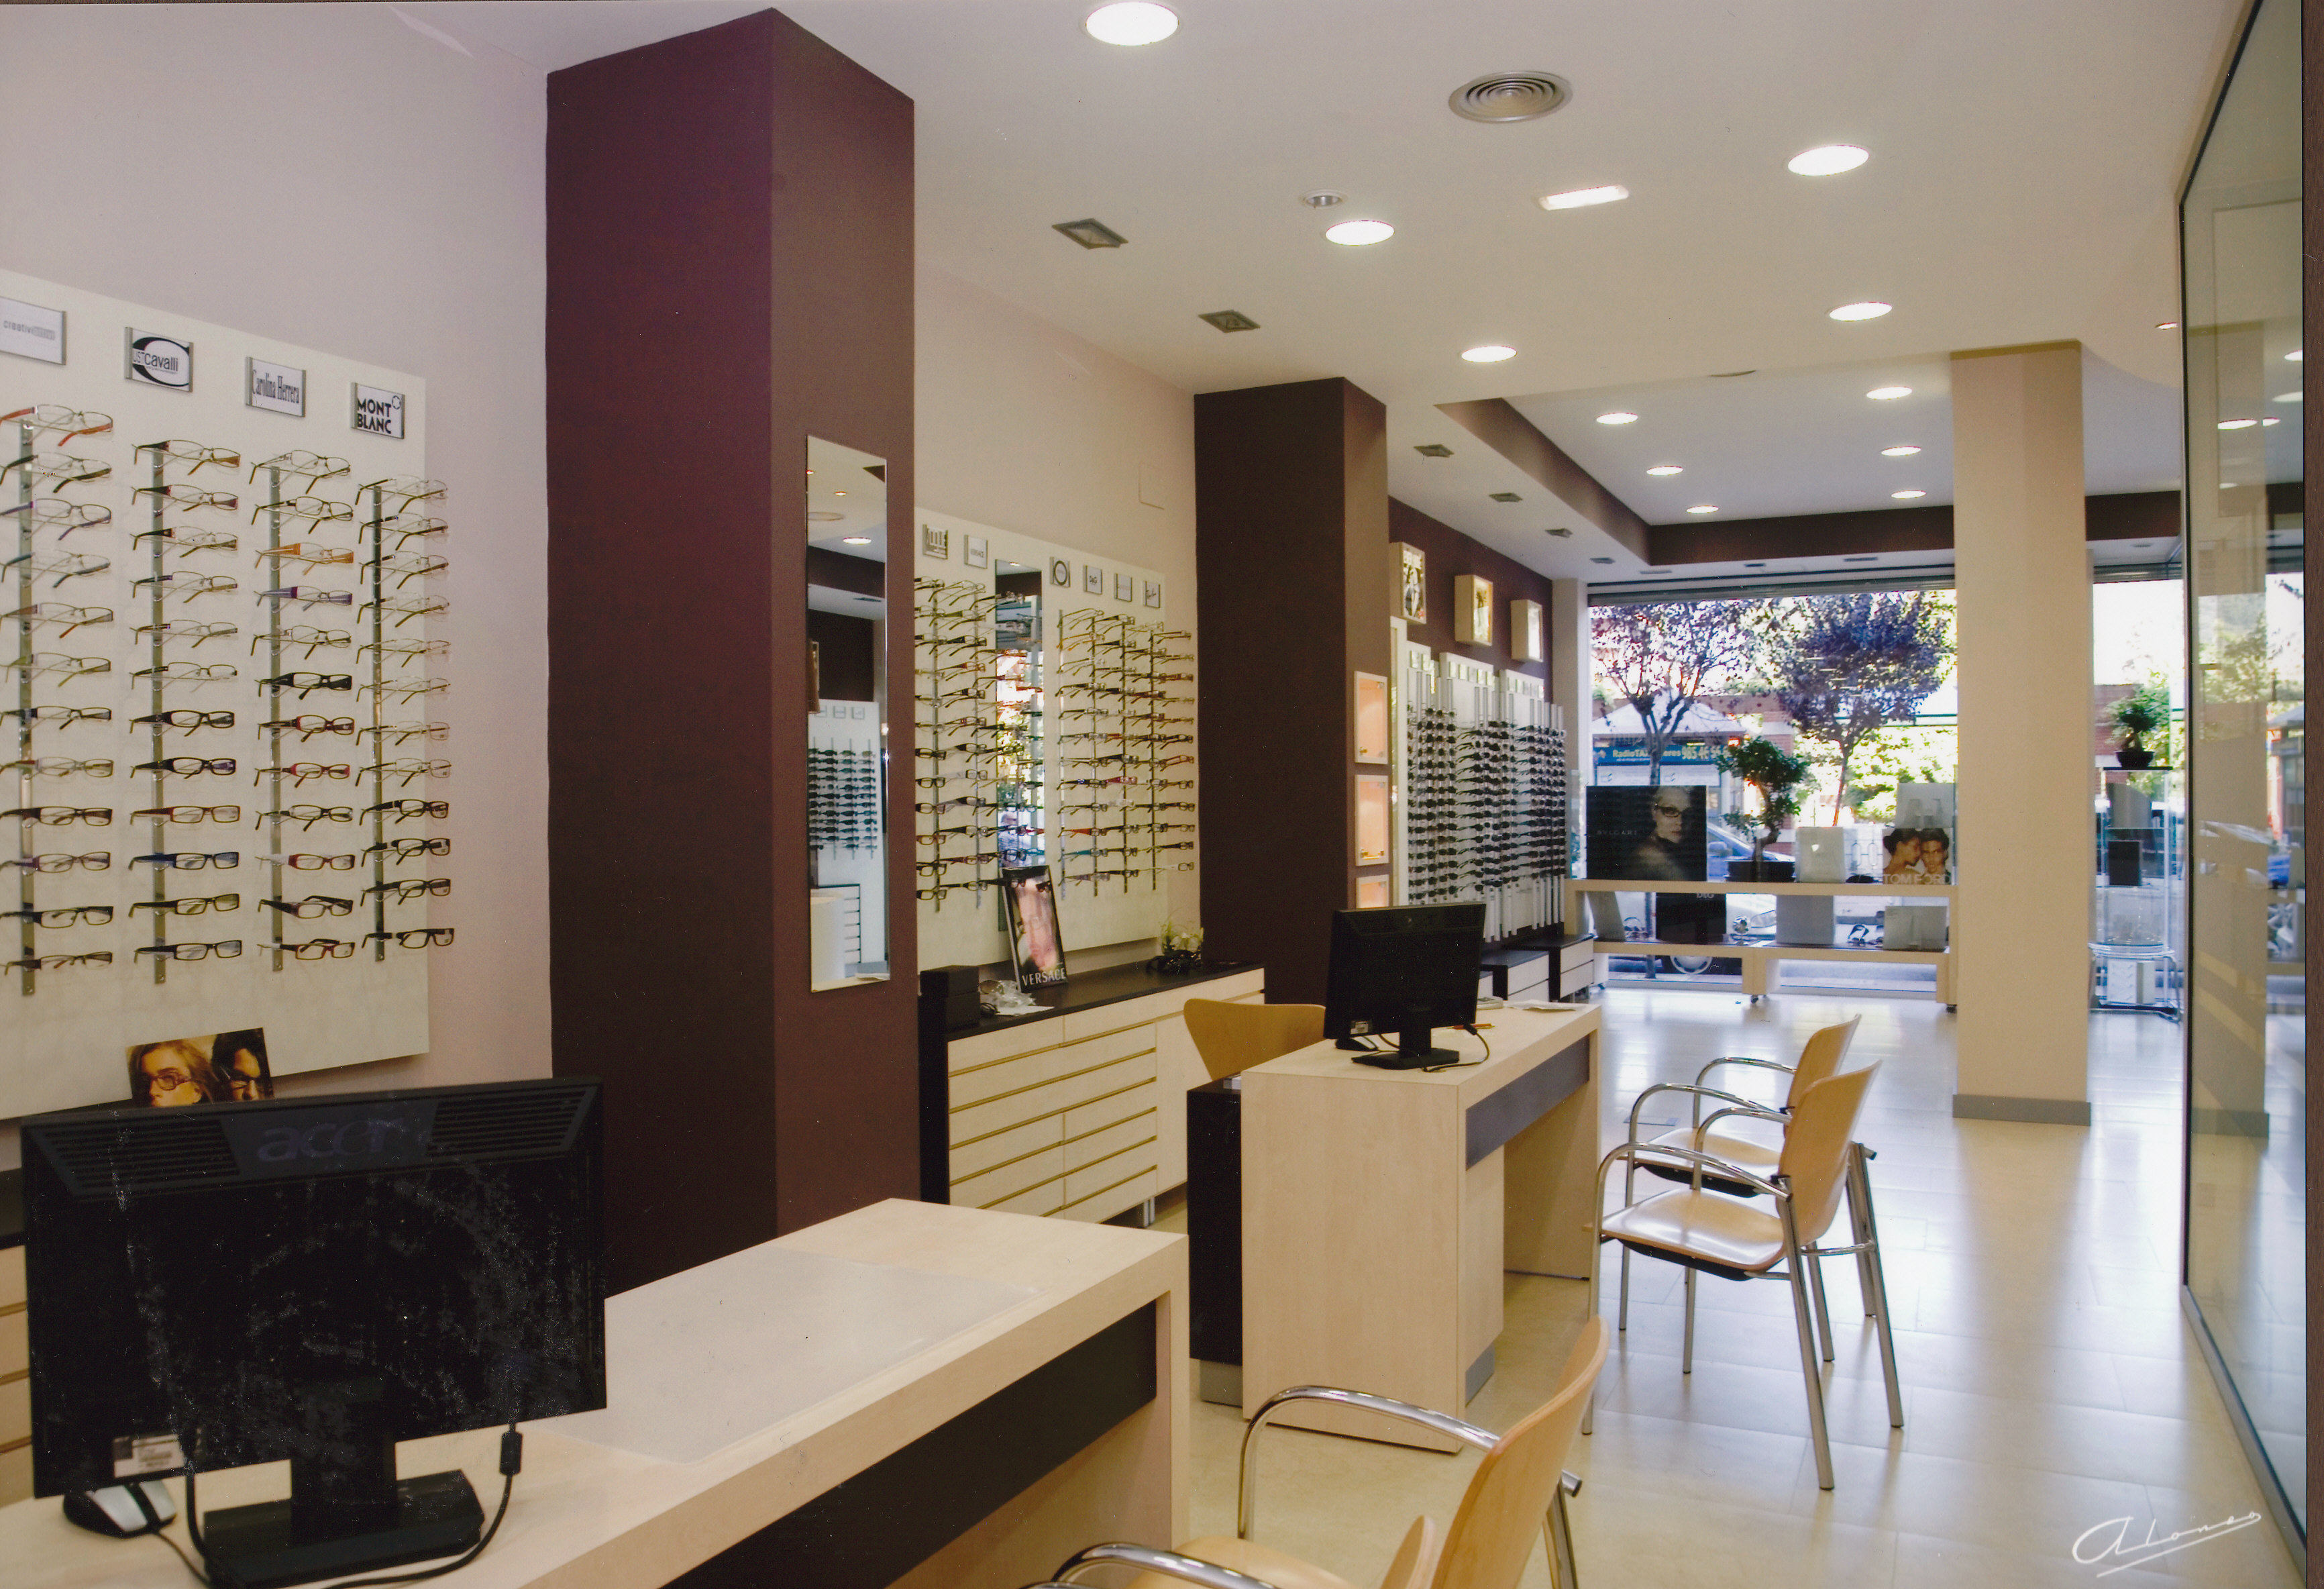 Local Optica Loveo